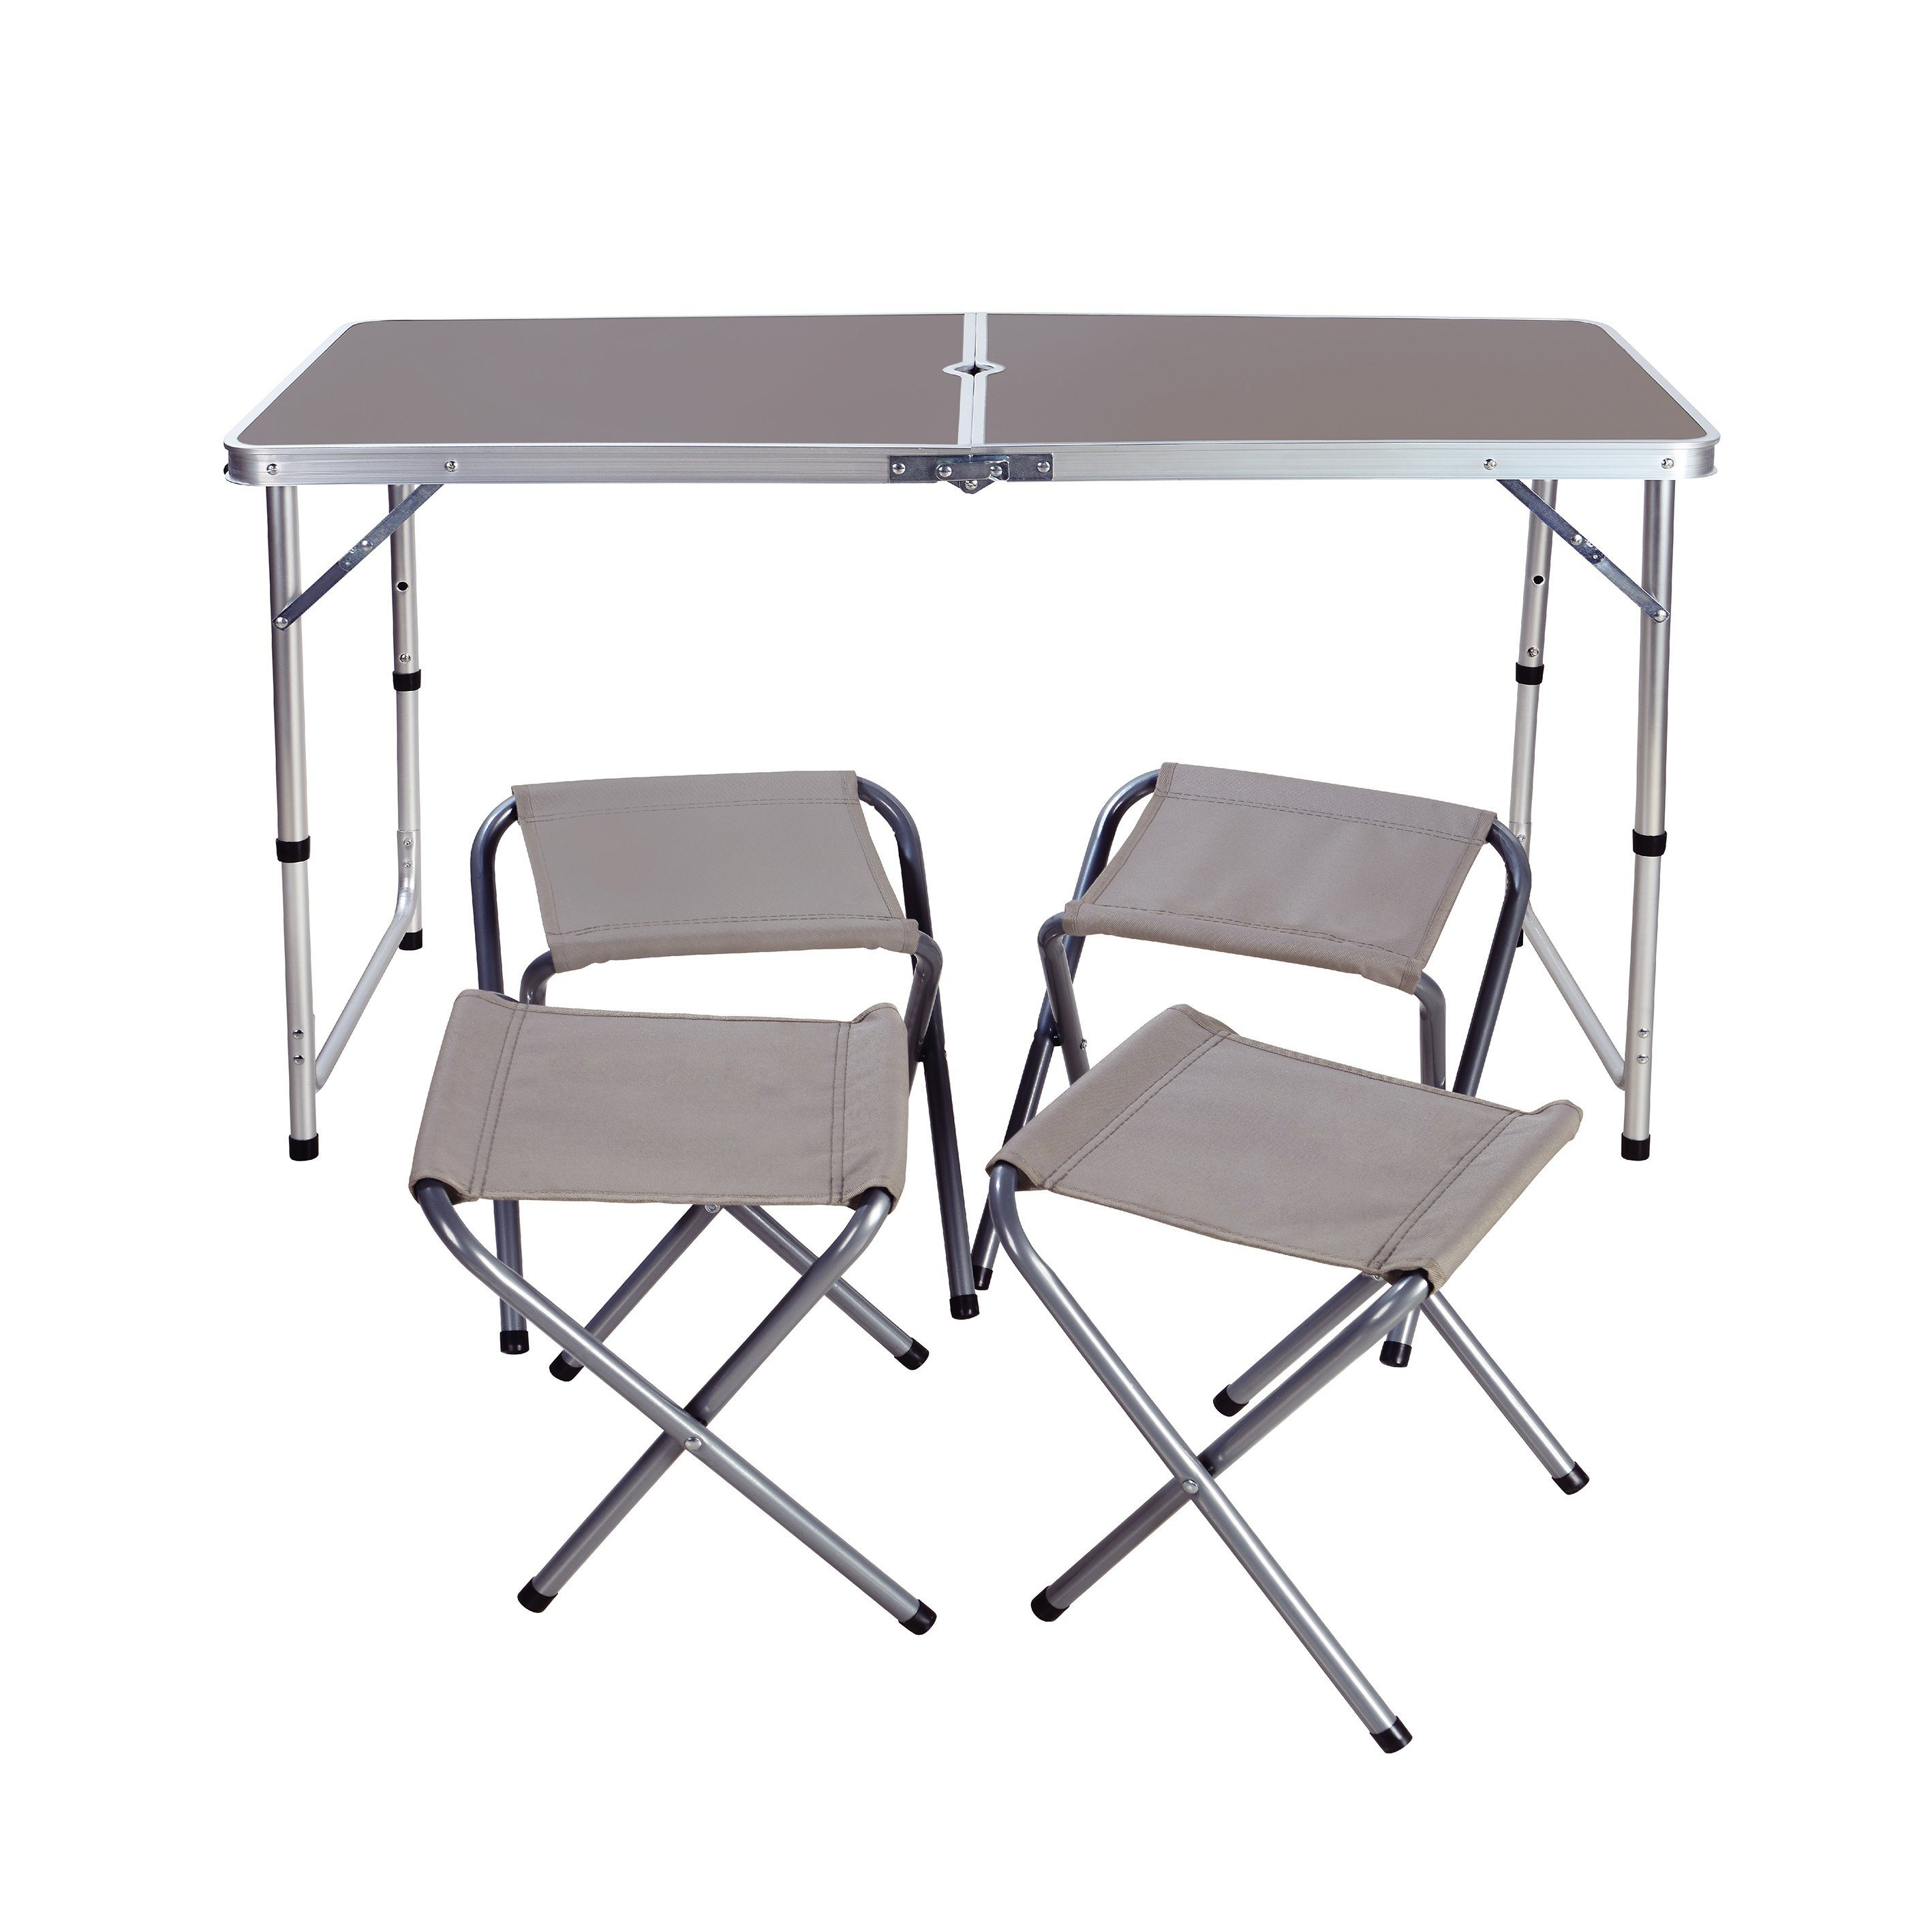 China Outdoor Height Adjustable Folding Table With 4 Folding Chairs Portable Camping Picnic Party Dining Table China Folding Tables Folding Dining Table